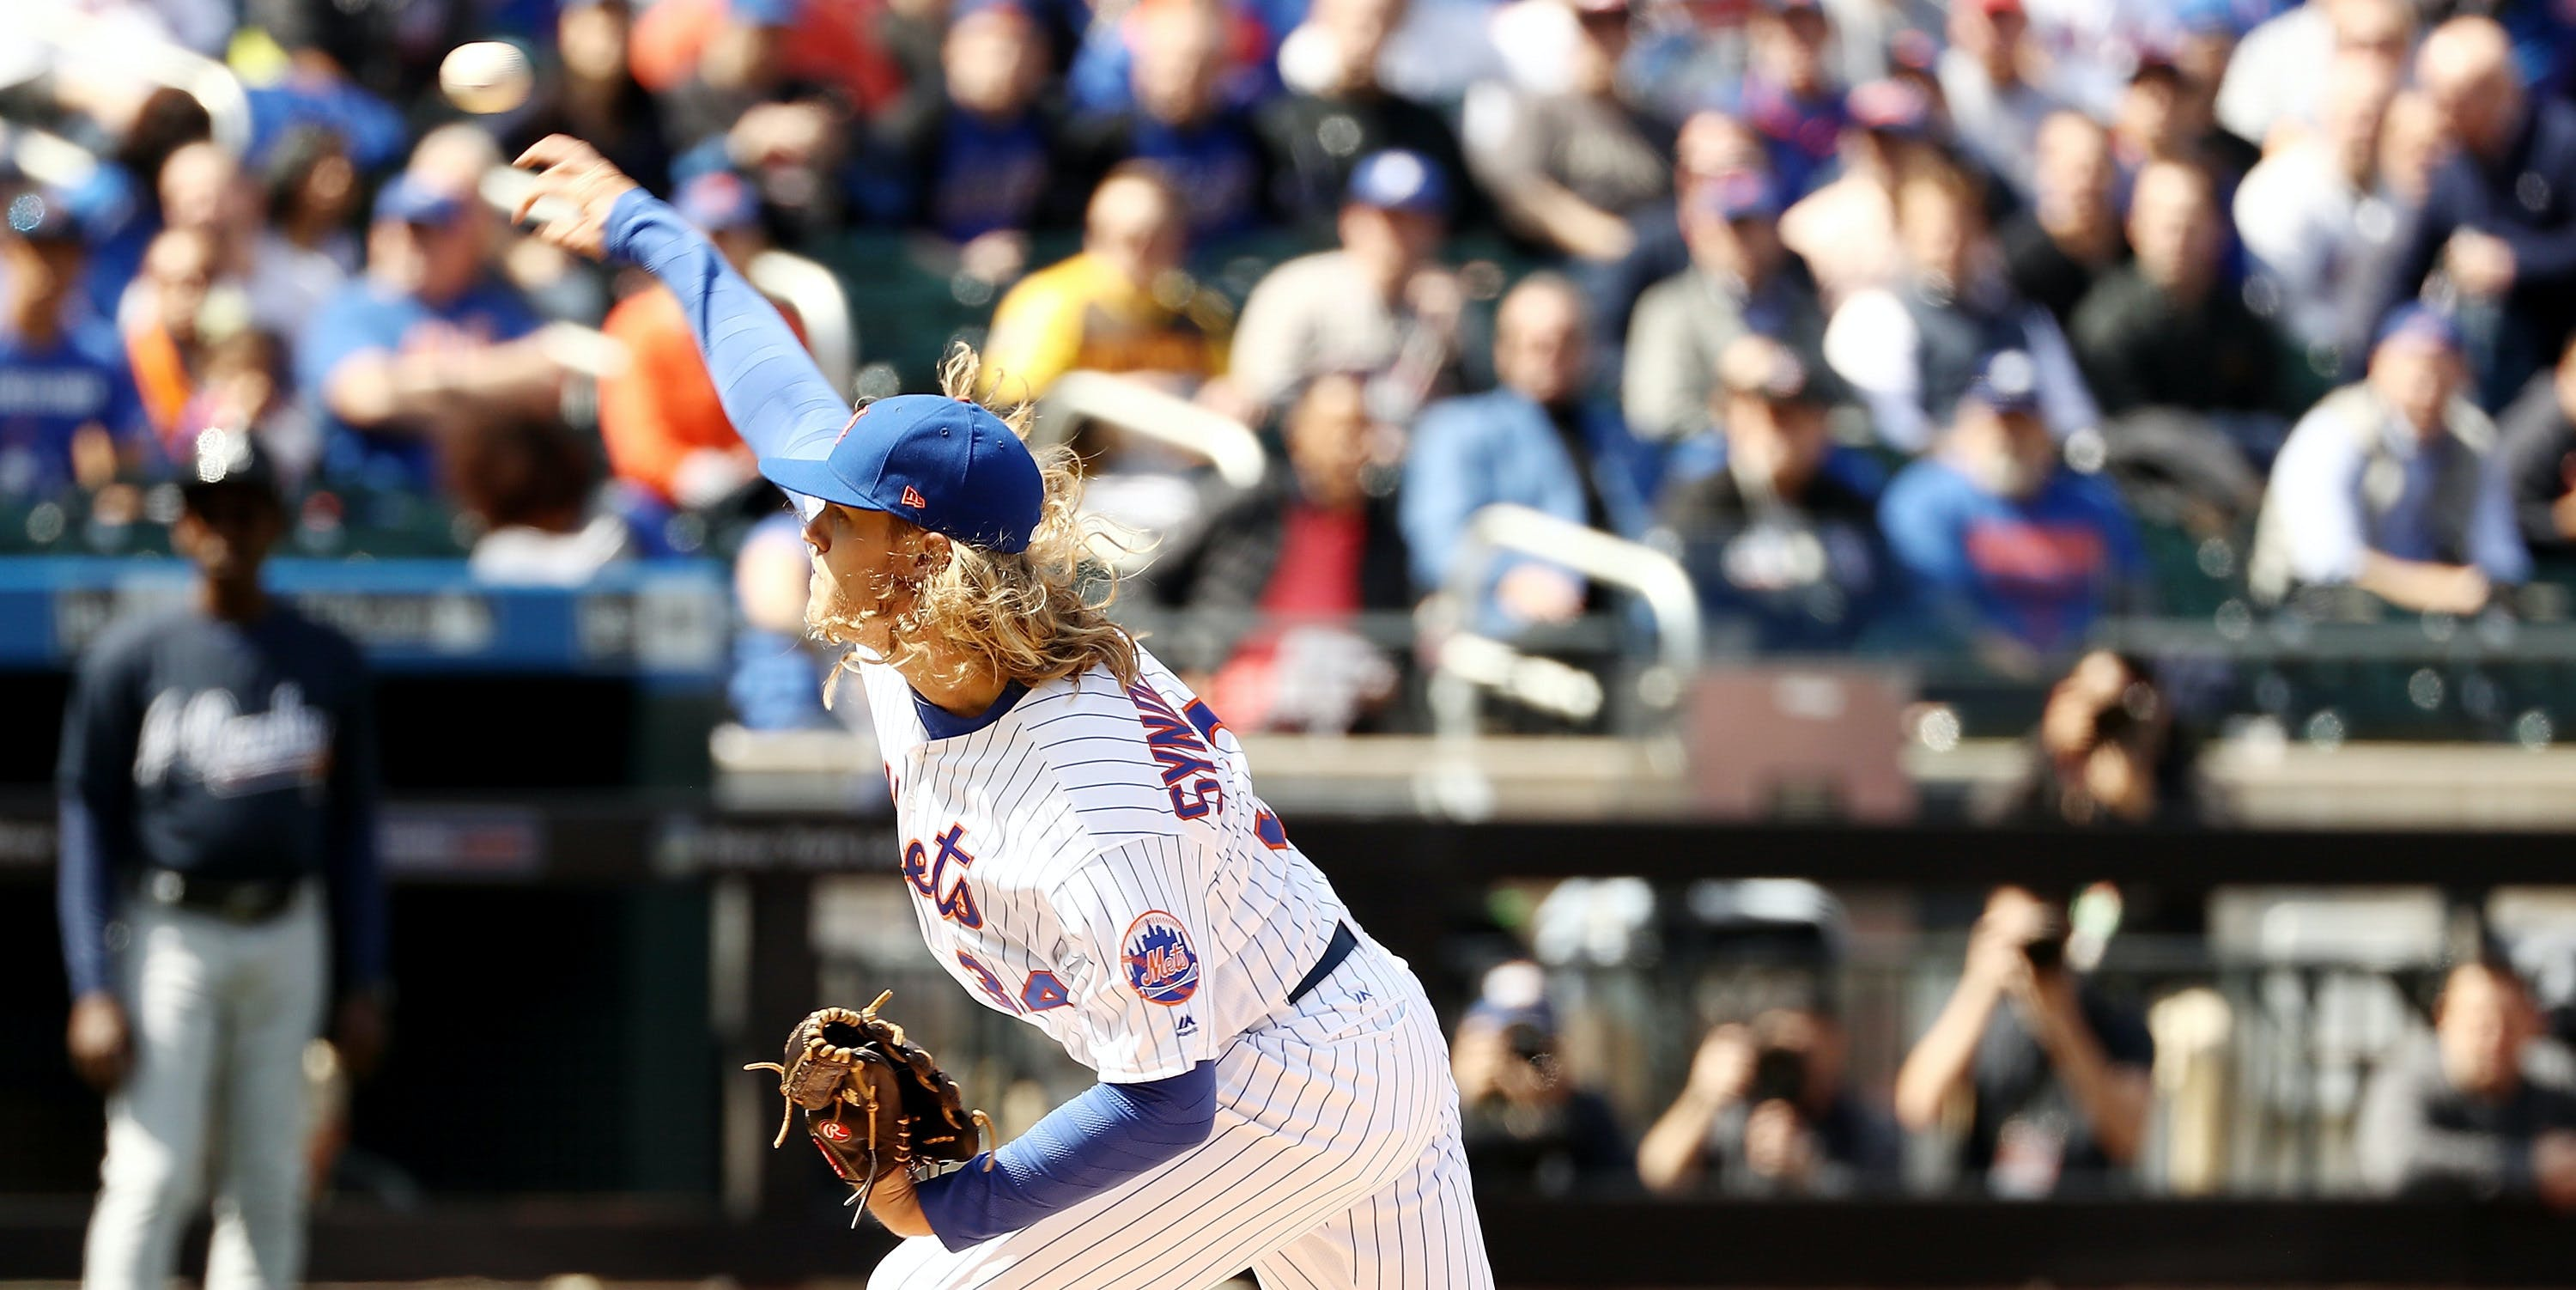 NEW YORK, NY - APRIL 03:  Noah Syndergaard #34 of the New York Mets delivers a pitch in the first inning against the Atlanta Braves during Opening Day on April 3, 2017 at Citi Field in the Flushing neighborhood of the Queens borough of New York City.  (Photo by Elsa/Getty Images)